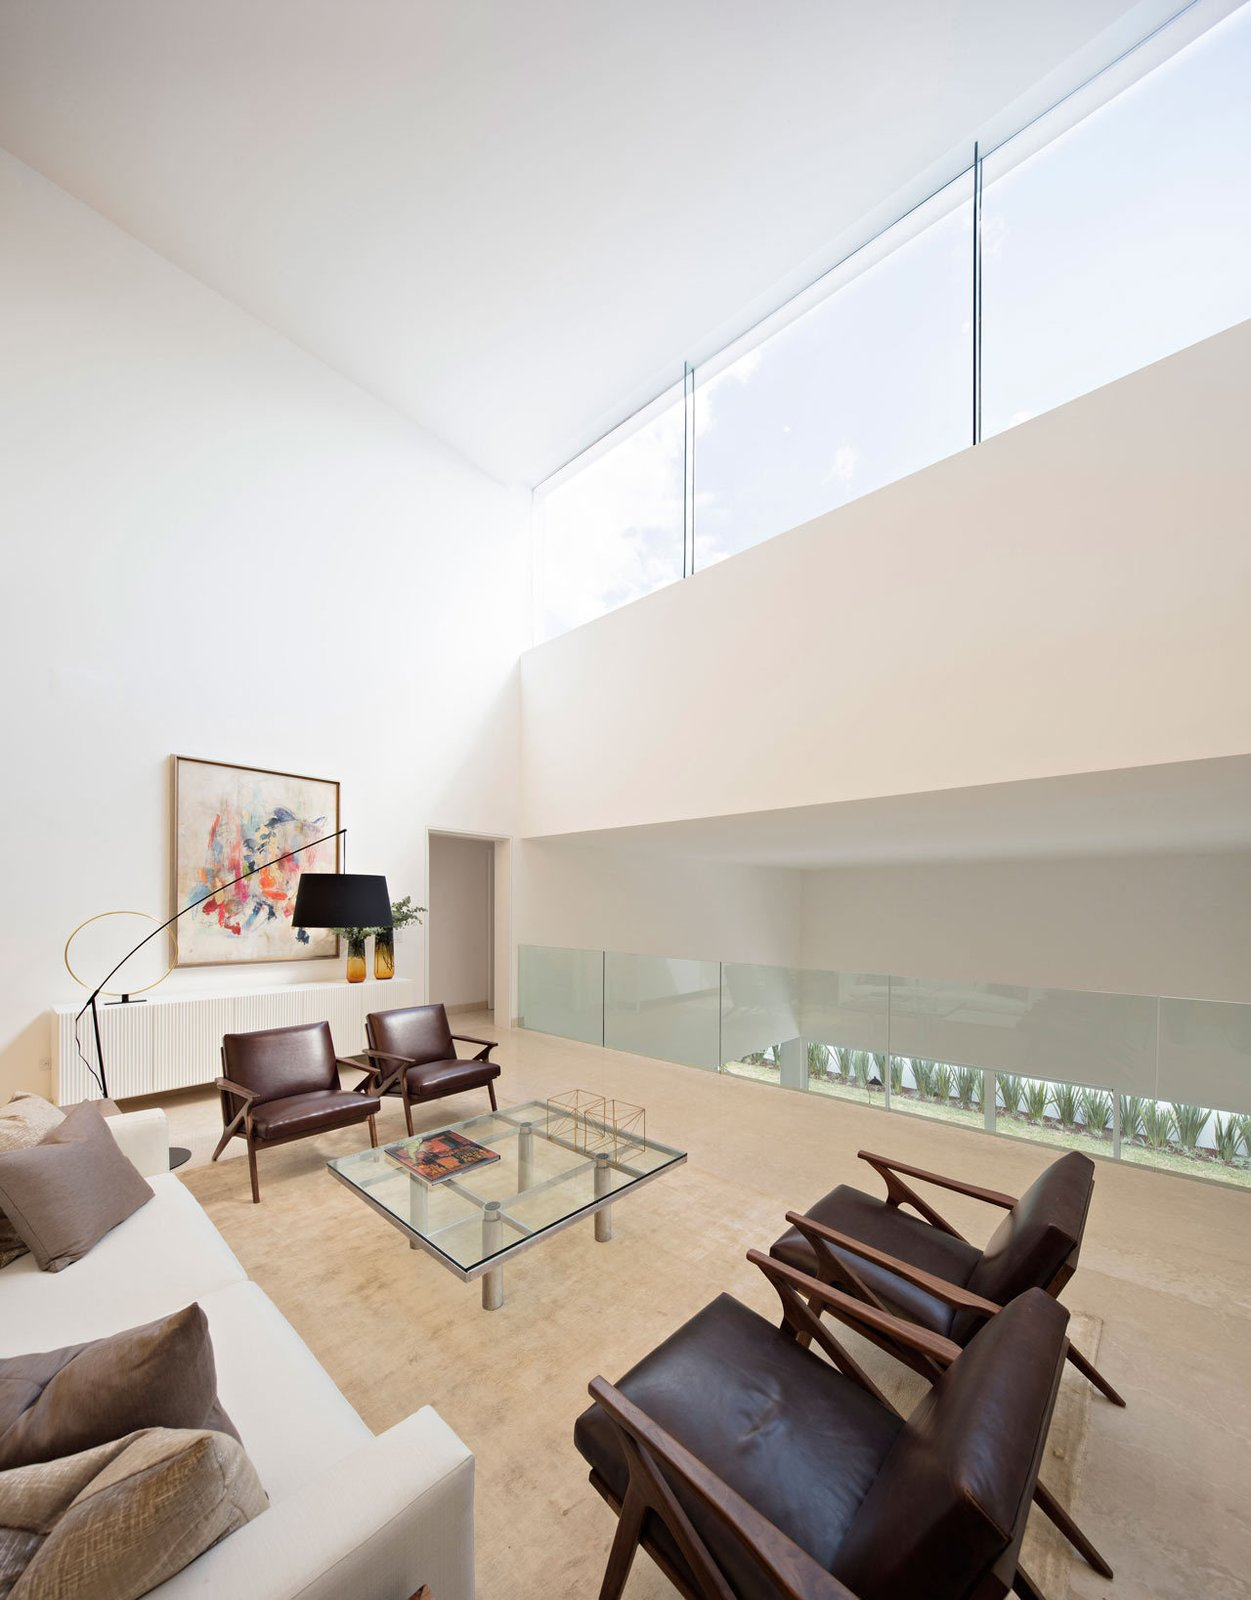 Photo 14 of 23 in Domus Aurea: A Modern, Mexican Residence with Mountain Views